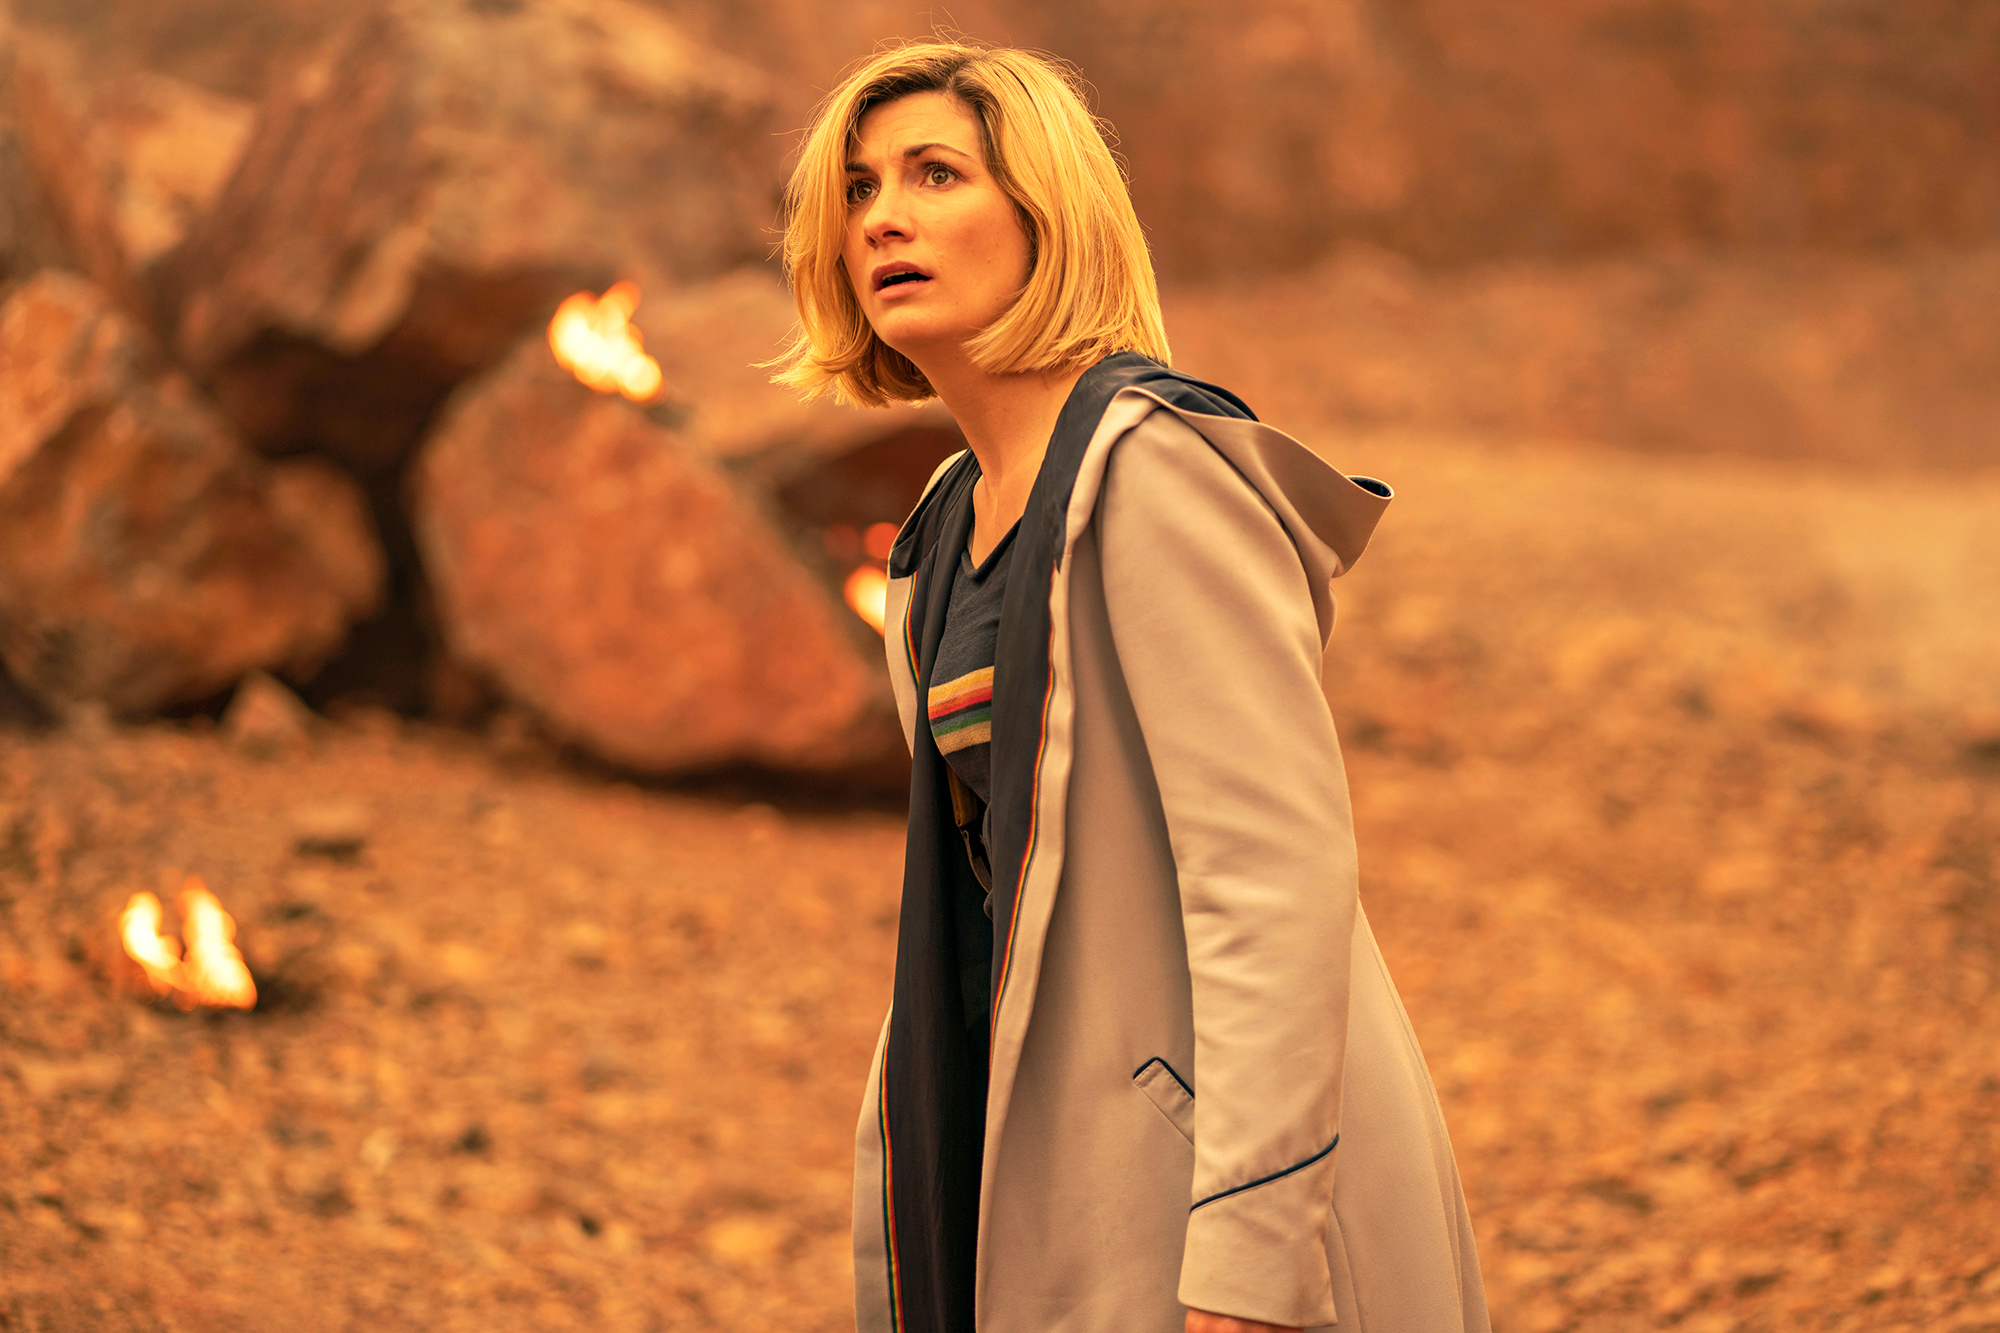 Jodie Whittaker as The Doctor - Doctor Who Season 12, Episode 10